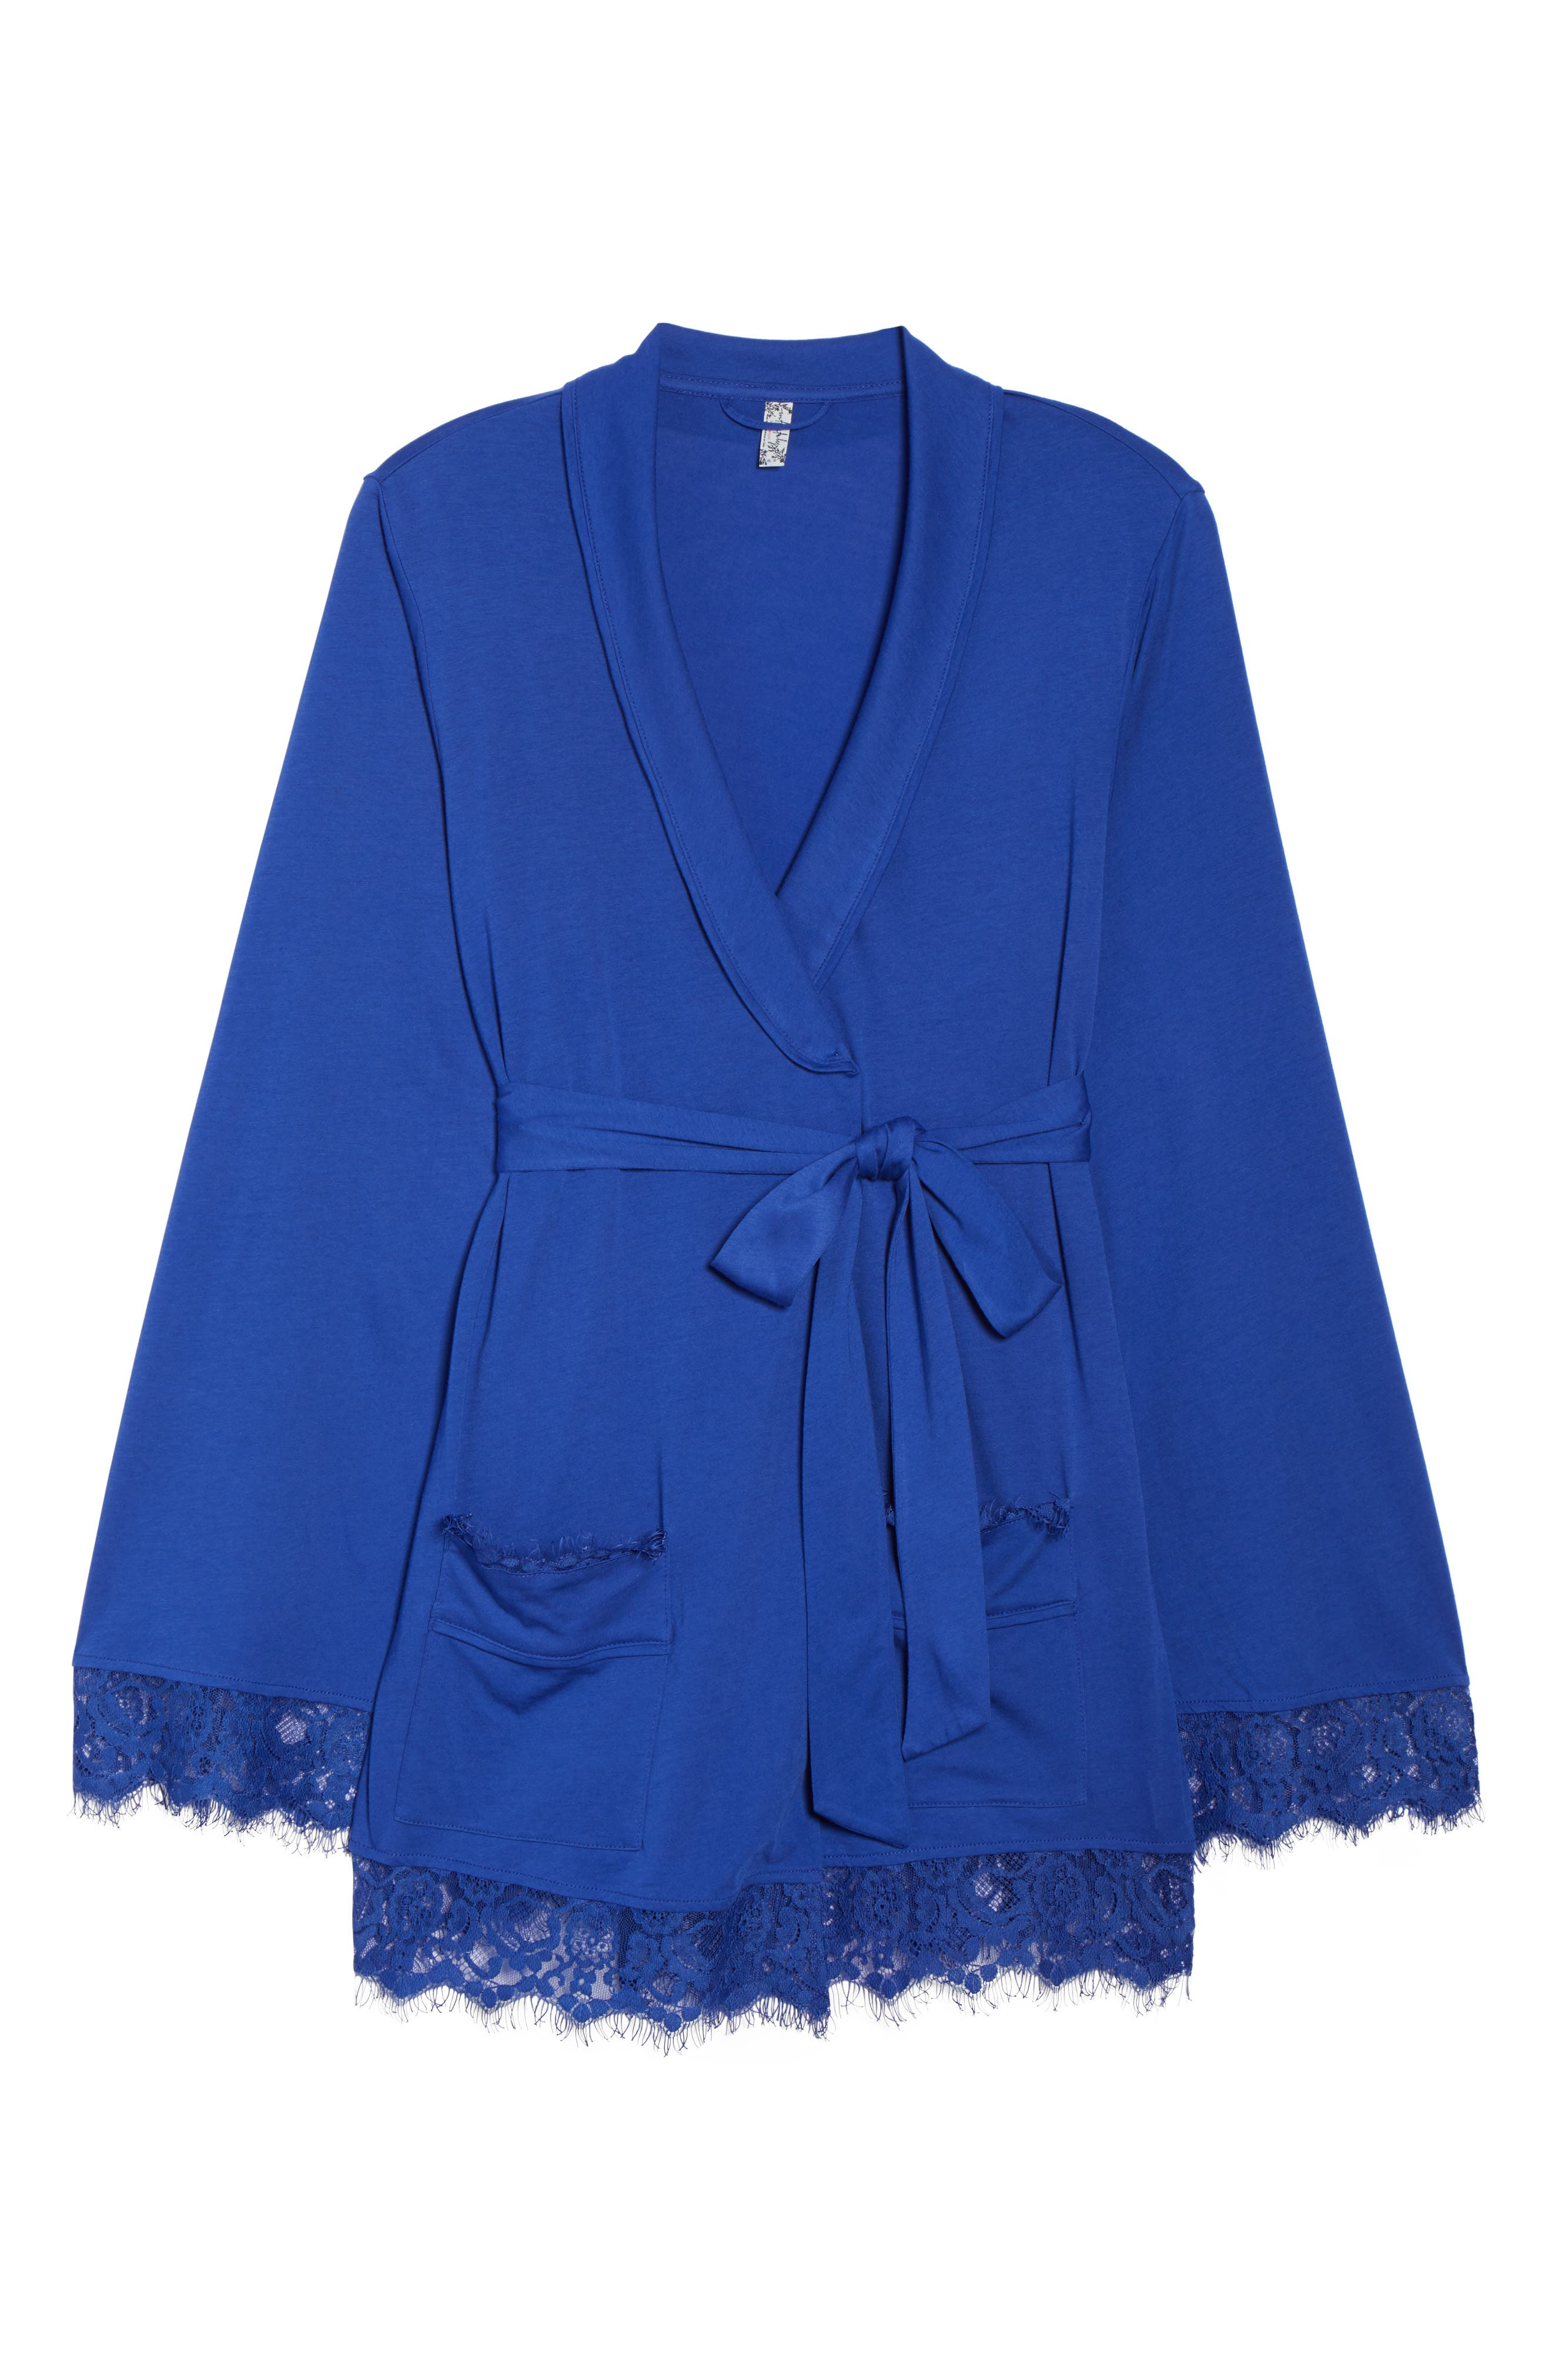 Sweetest Thing Robe,                             Alternate thumbnail 17, color,